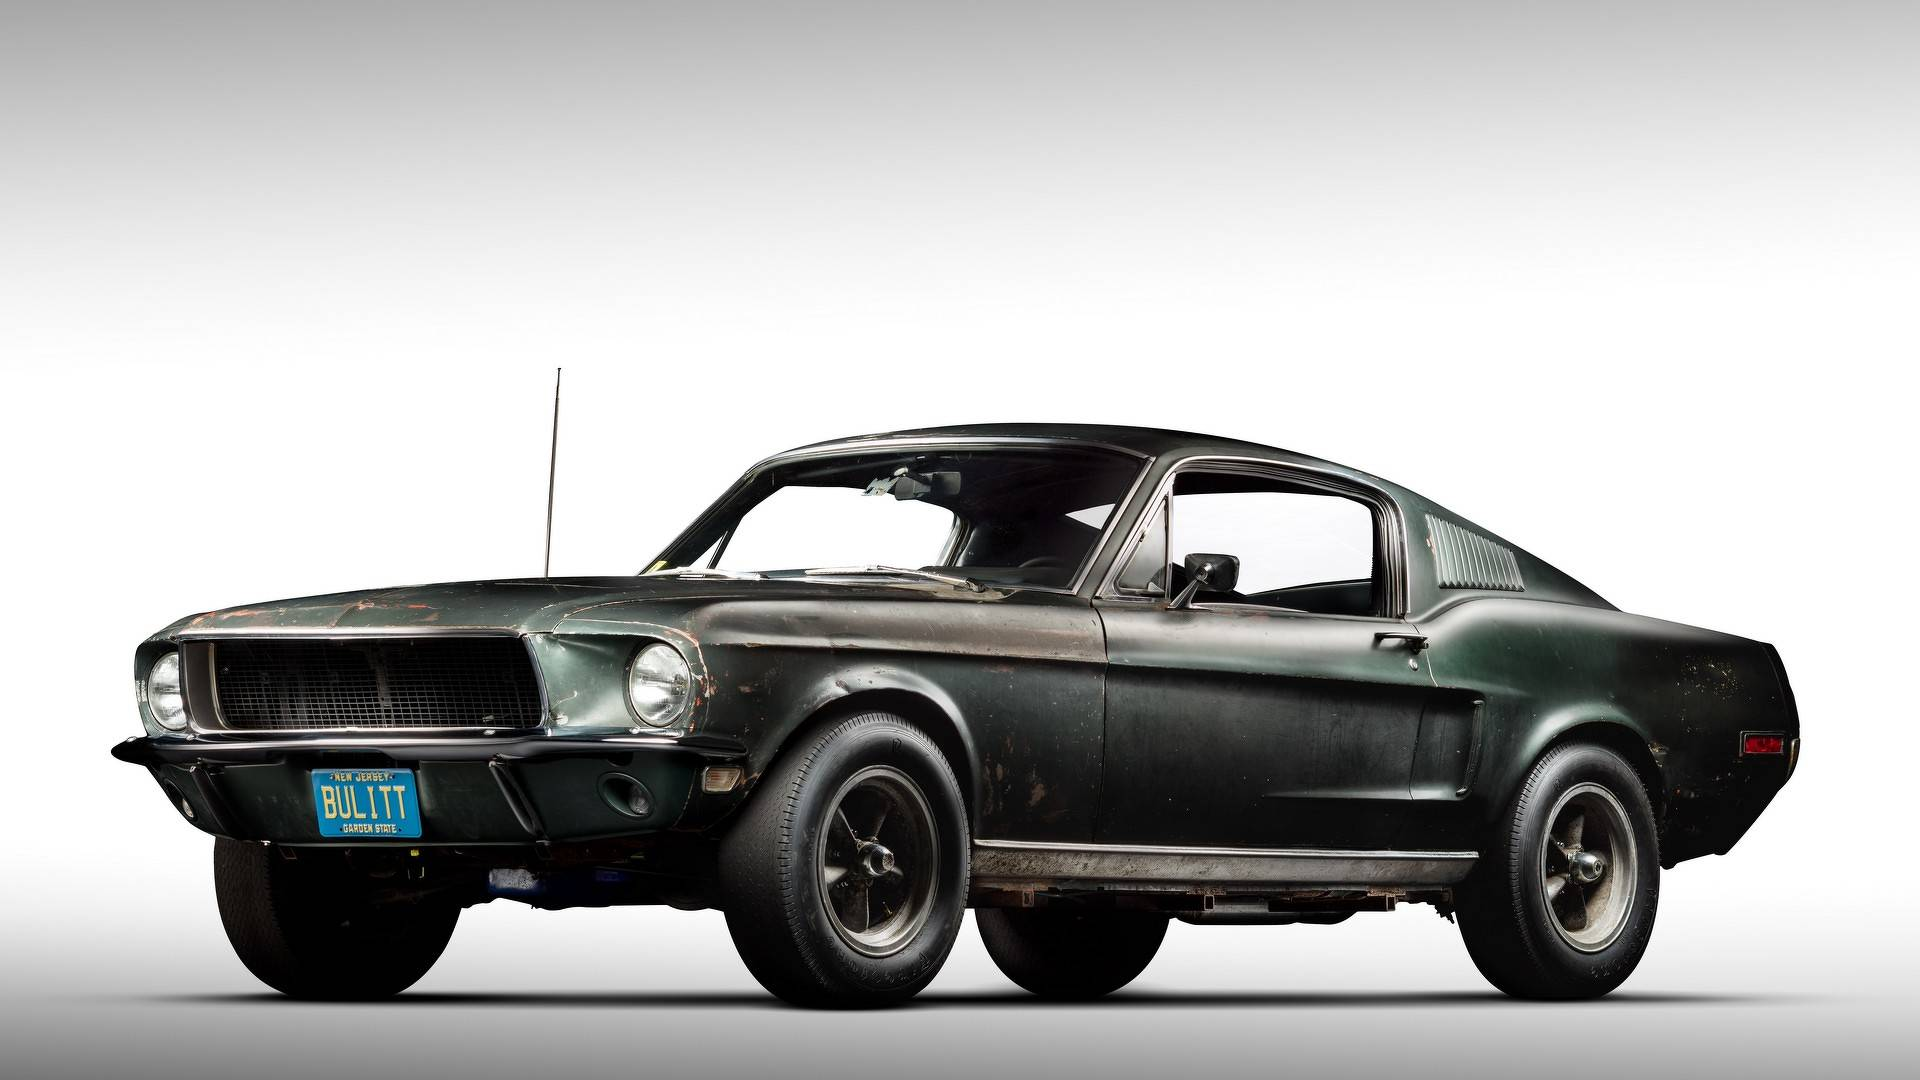 1968_Ford_Mustang_Bullit_original_movie_car_0002